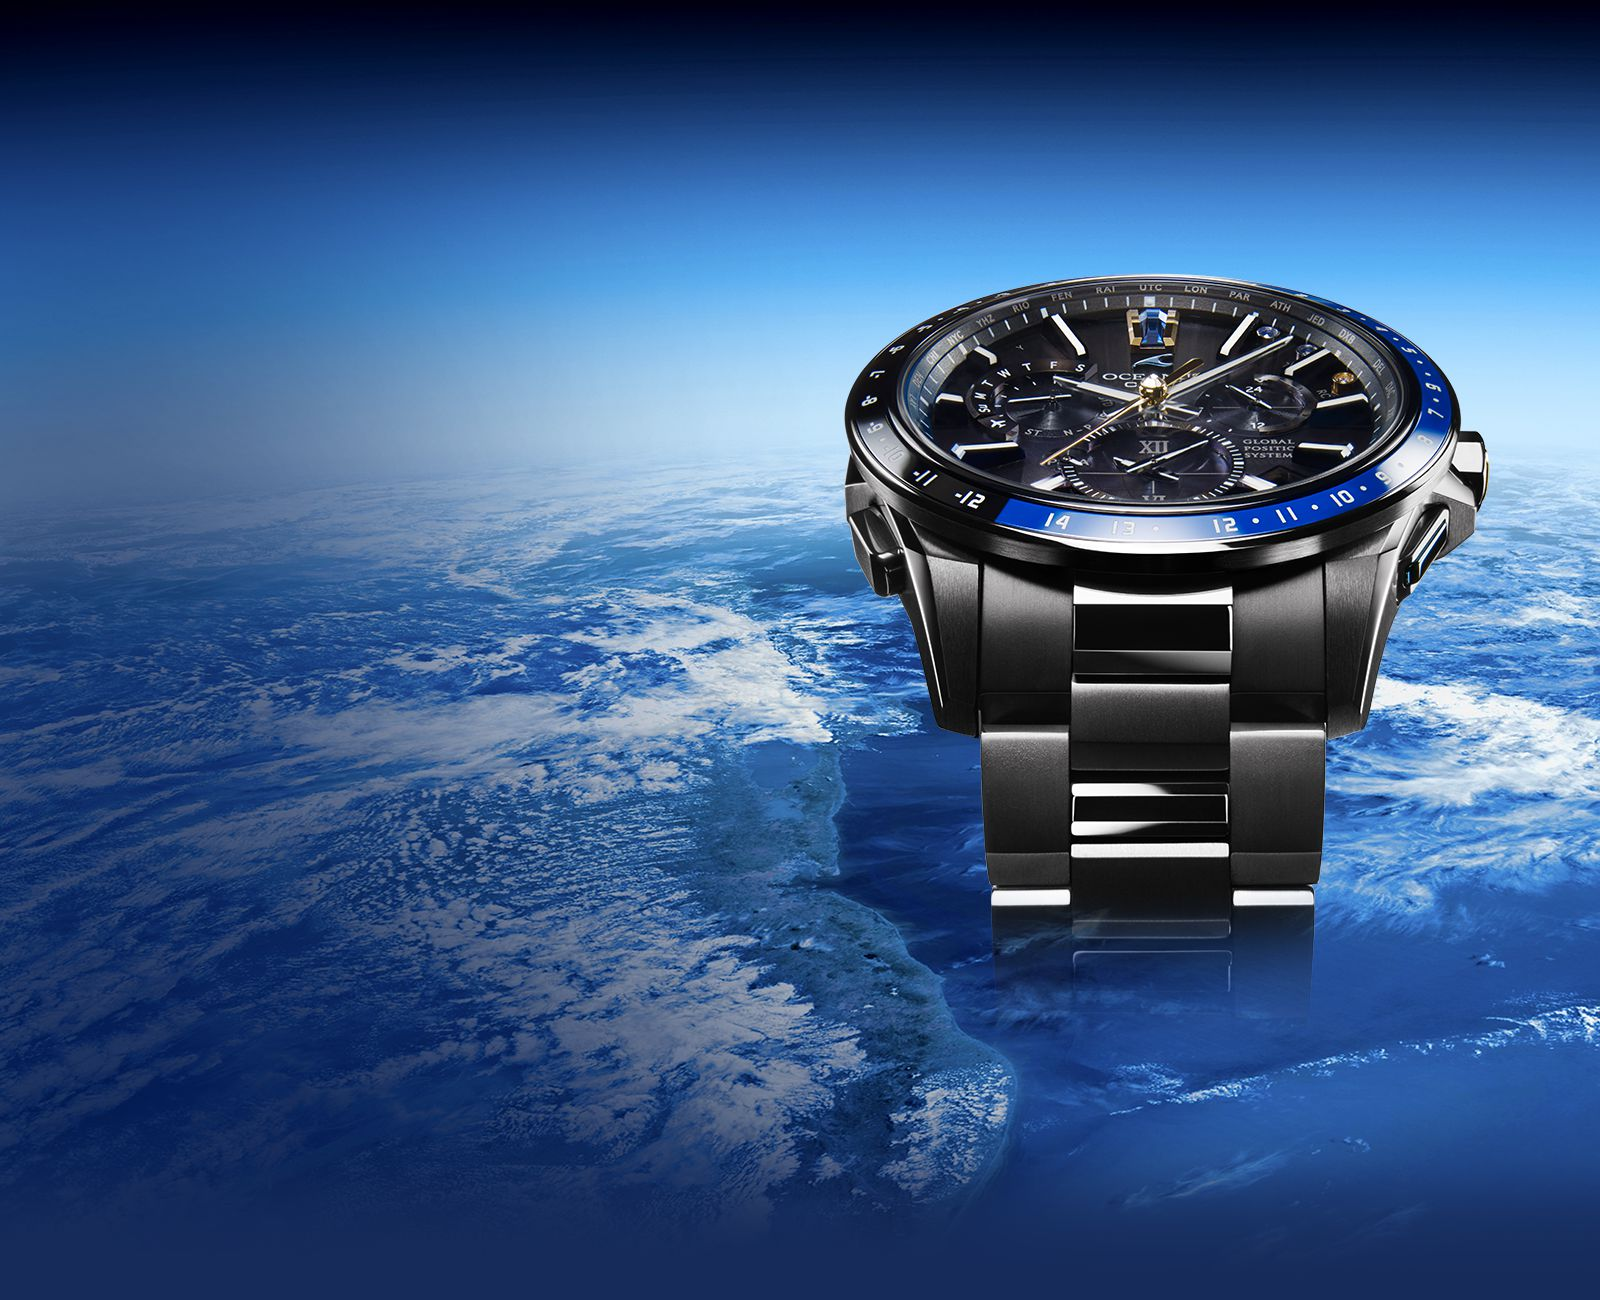 [Official] Oceanus OCW-G1100S with Mysterious Appeal